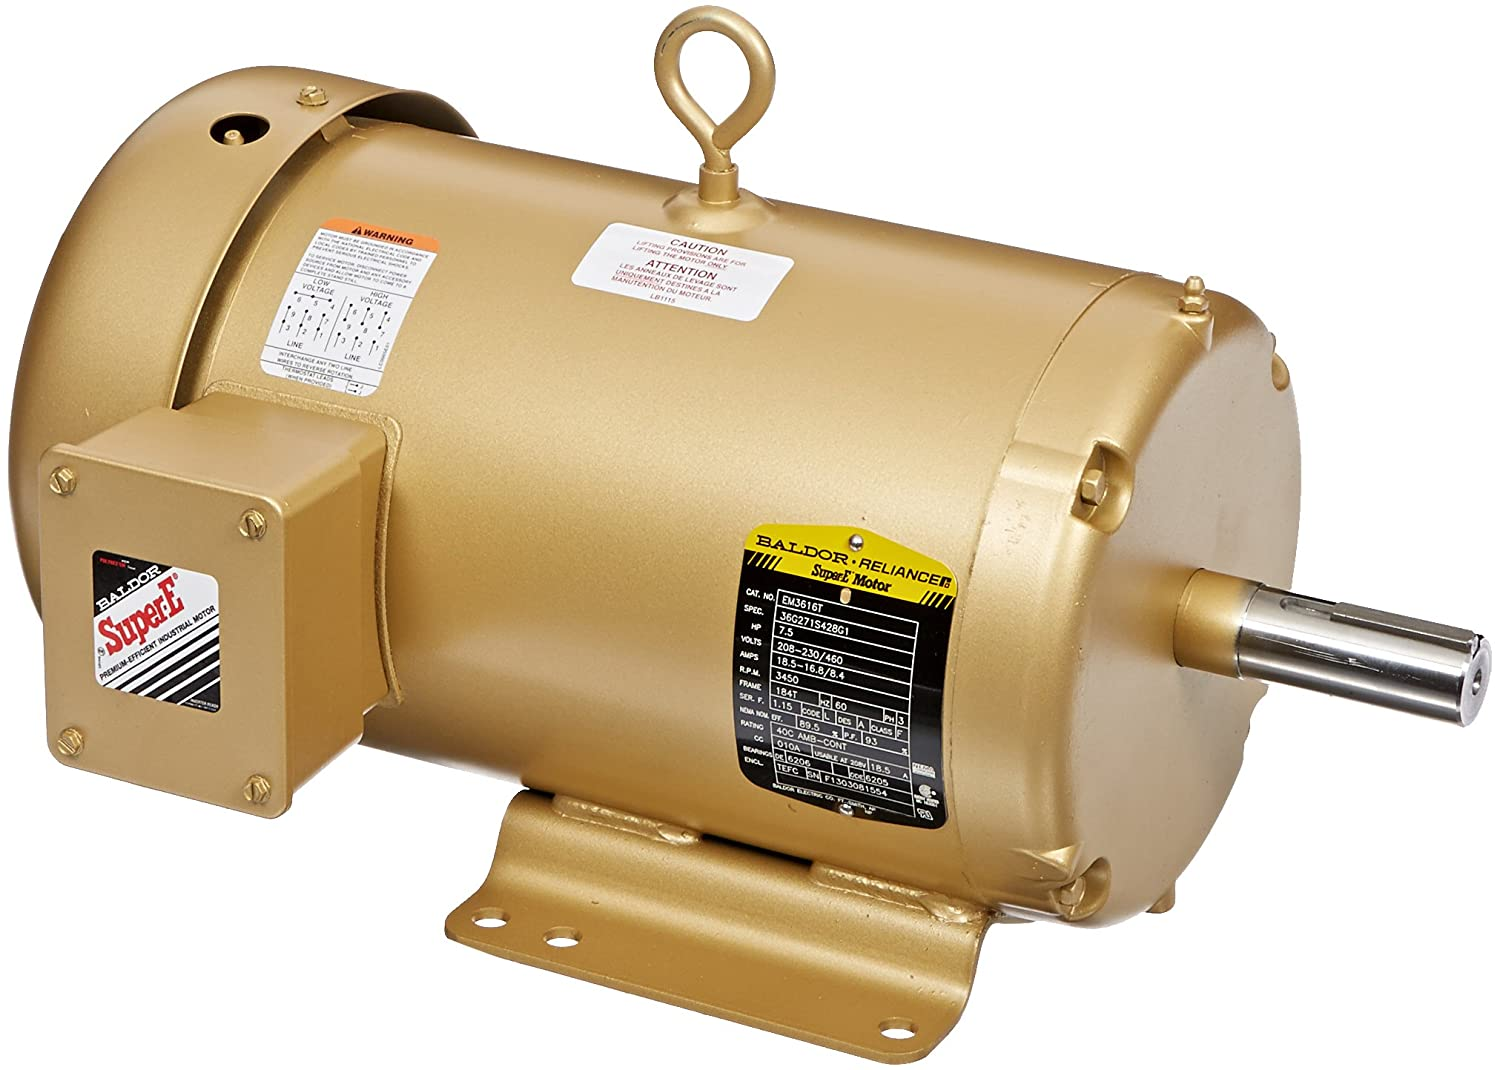 Baldor Em3616t General Purpose Ac Motor 3 Phase 184t Frame Tefc Motors Enclosure 7 1 2hp Output 3450rpm 60hz 208 230 460v Voltage Electronic Component